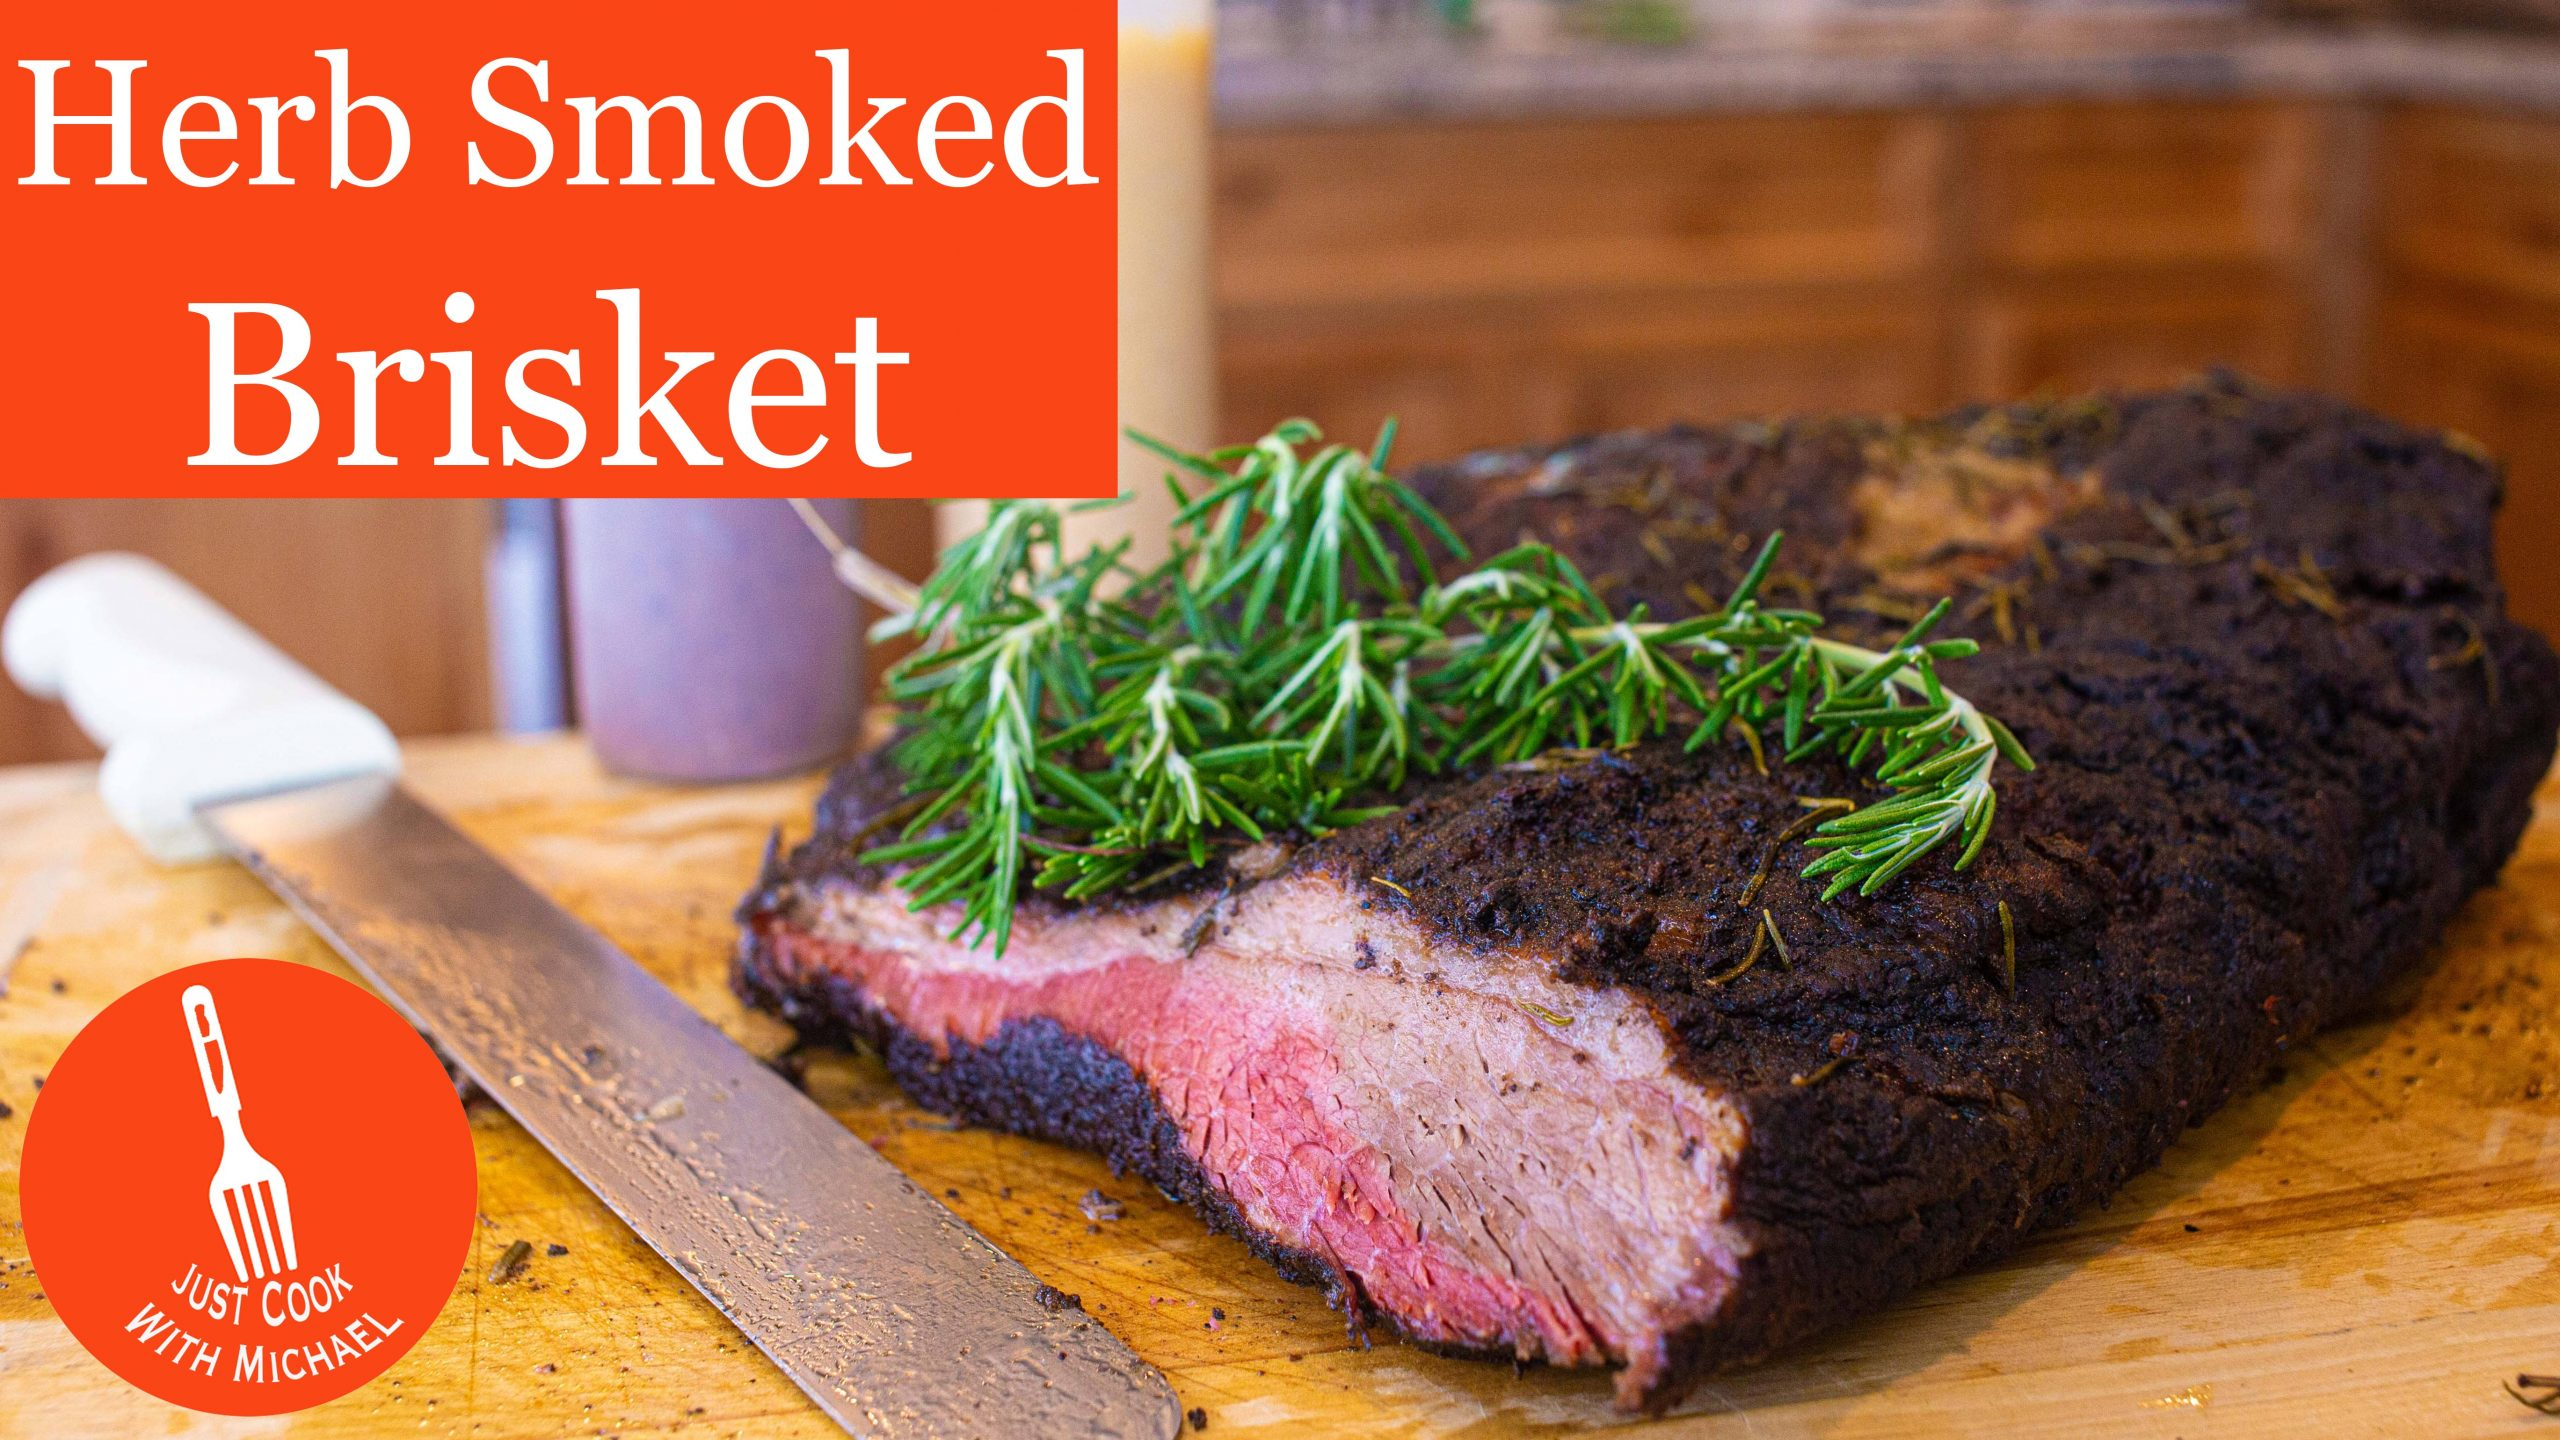 Mediterranean Herb Smoked Barbecued Brisket with piece sliced